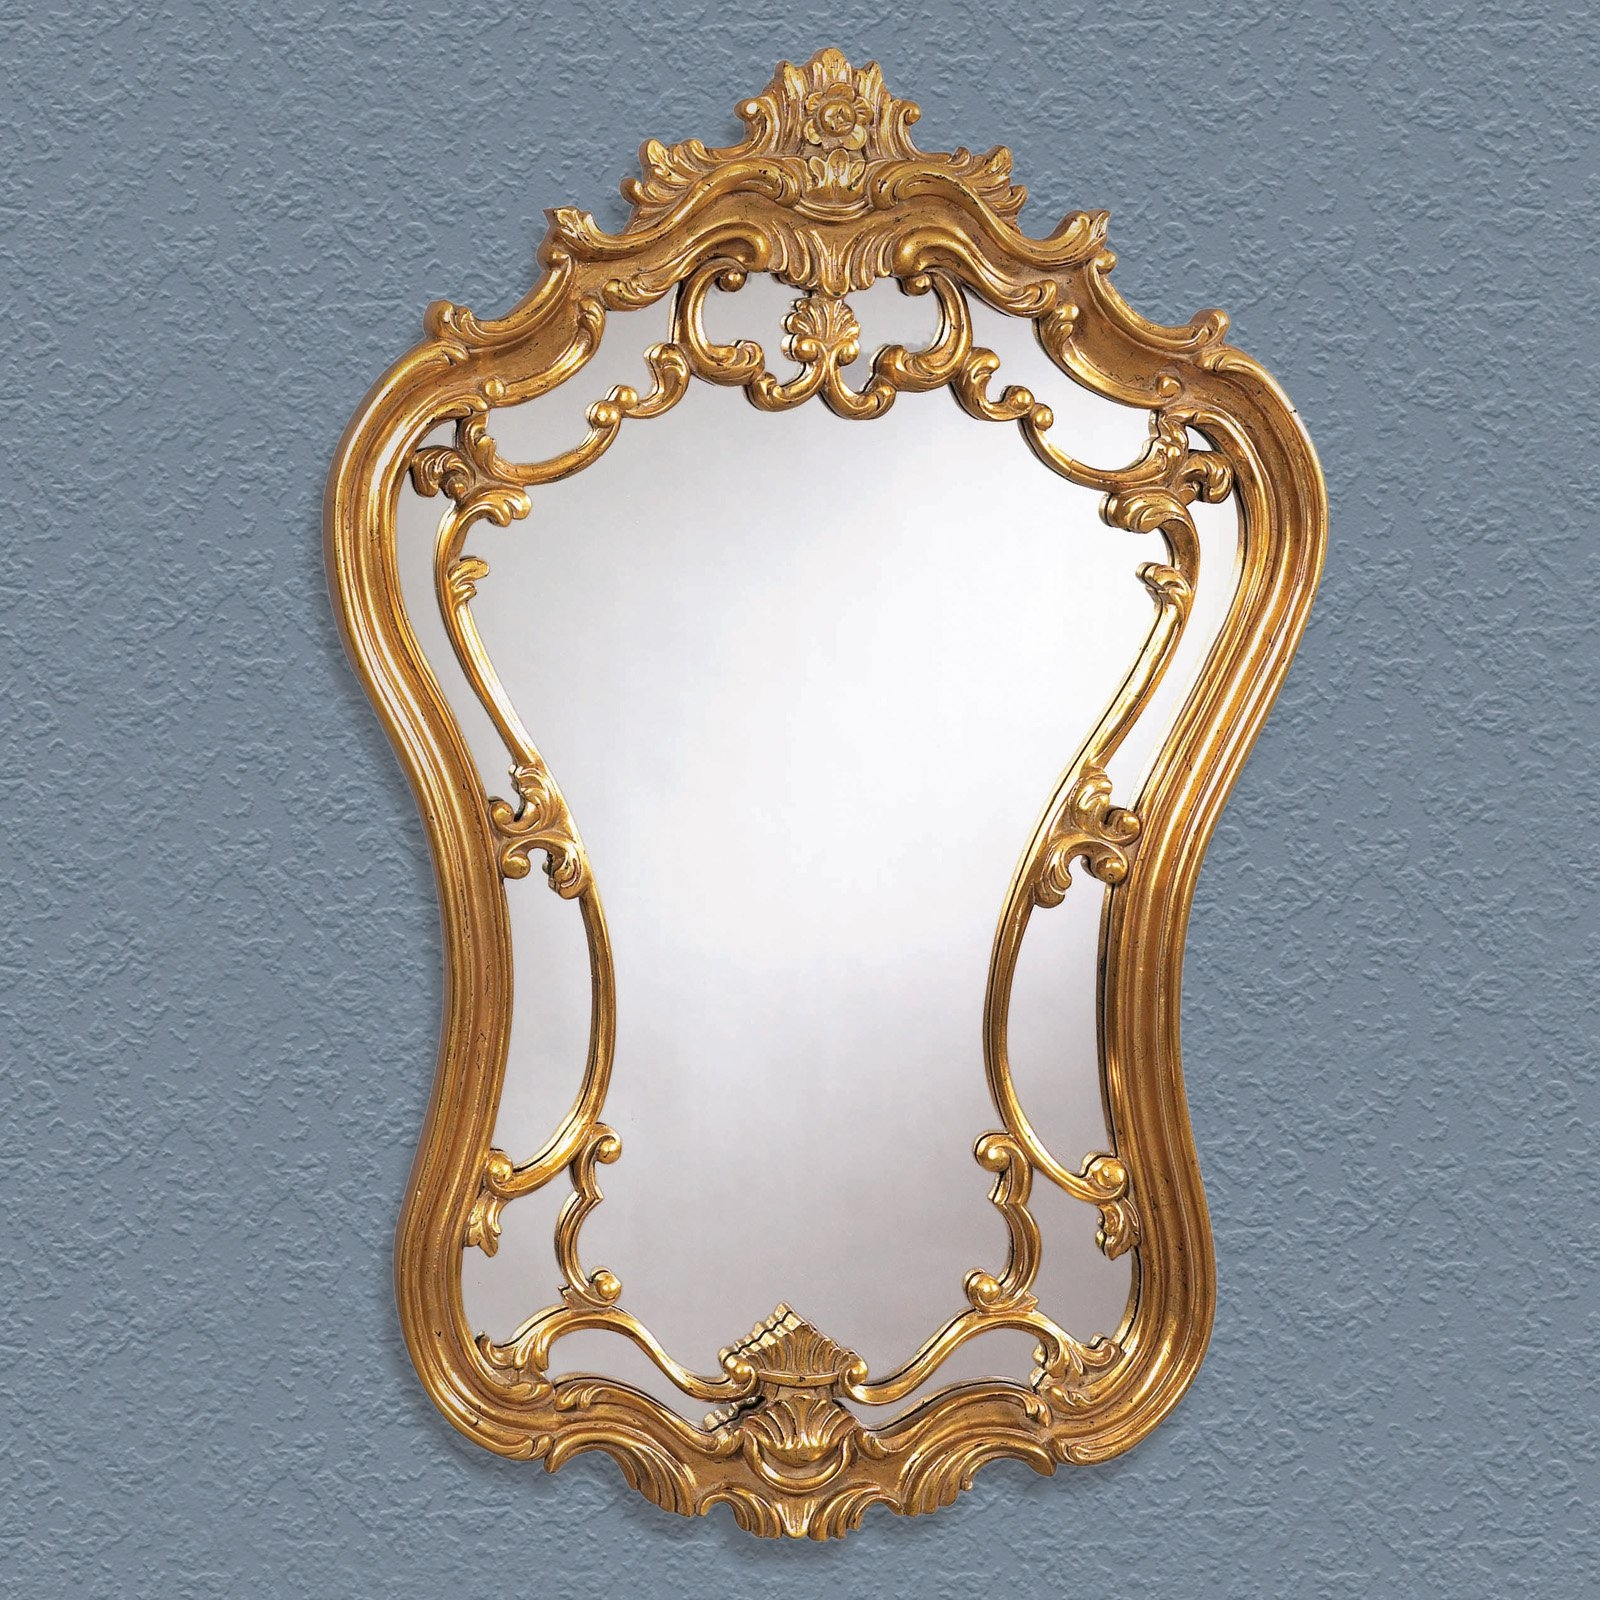 Antique Gold Ornate Arched Wall Mirror 24w X 35h In Mirrors Inside Mirror Ornate (Image 1 of 15)